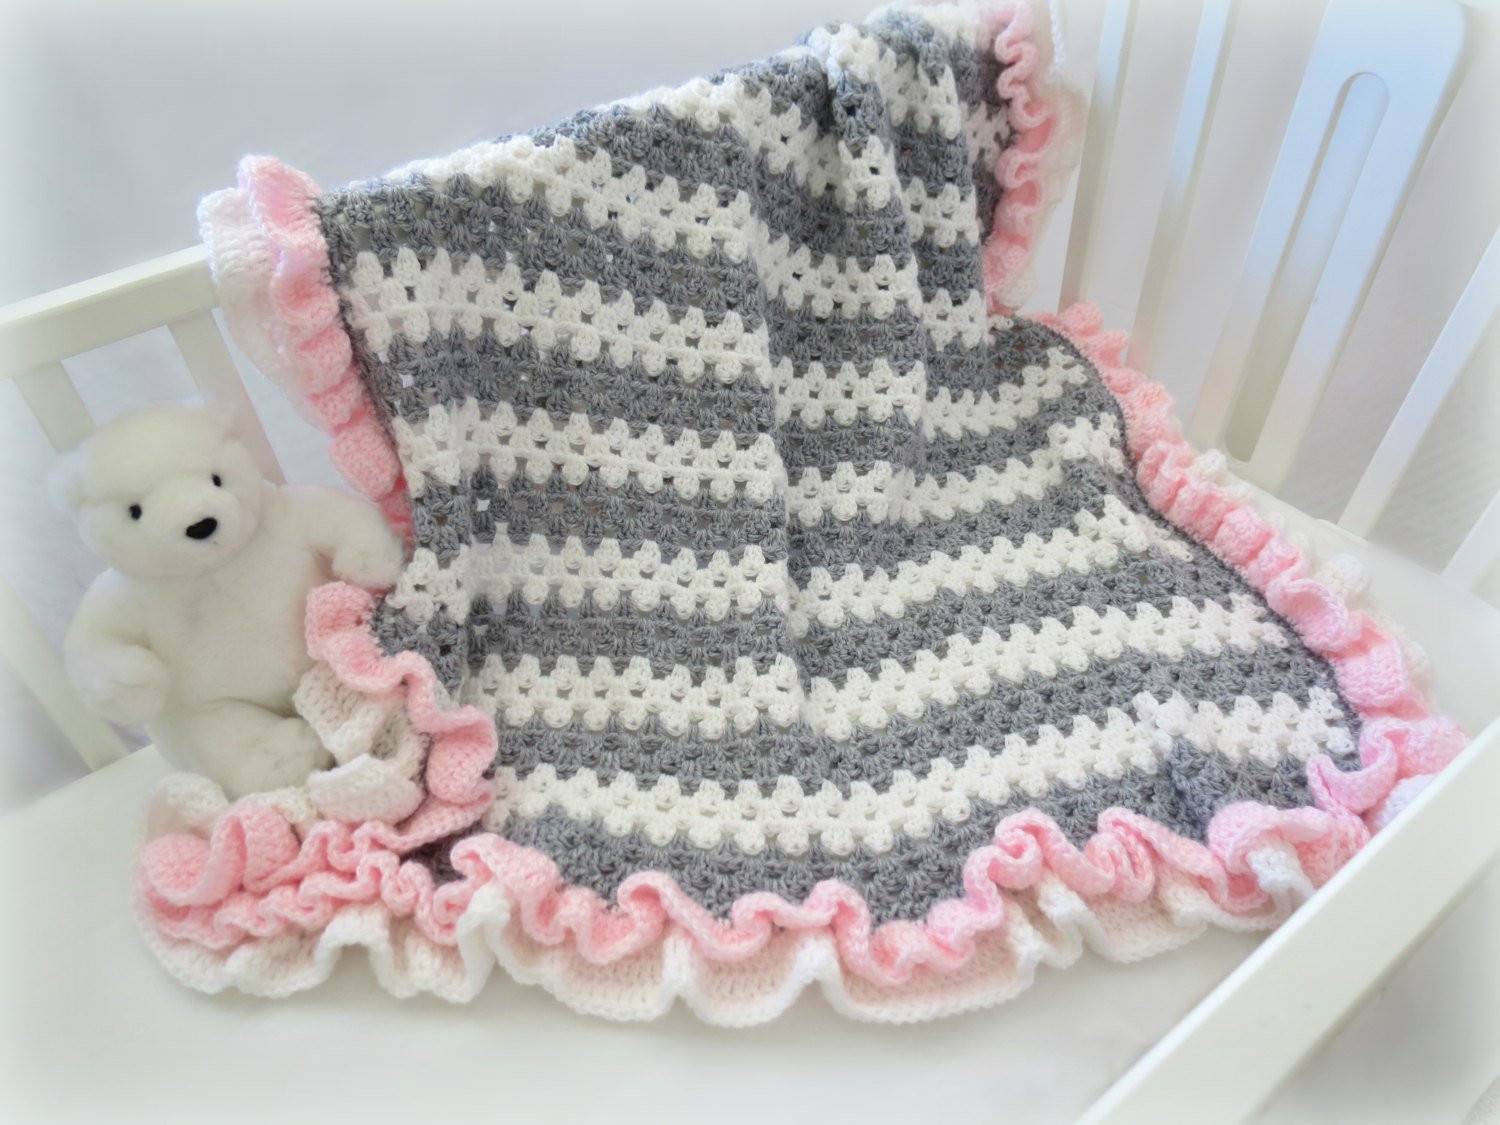 Baby Boy Crochet Blanket Patterns New Crochet Baby Blanket Pattern Baby Crochet Blanket Afghan Of Baby Boy Crochet Blanket Patterns New Free Baby Boy Crochet Blanket Patterns